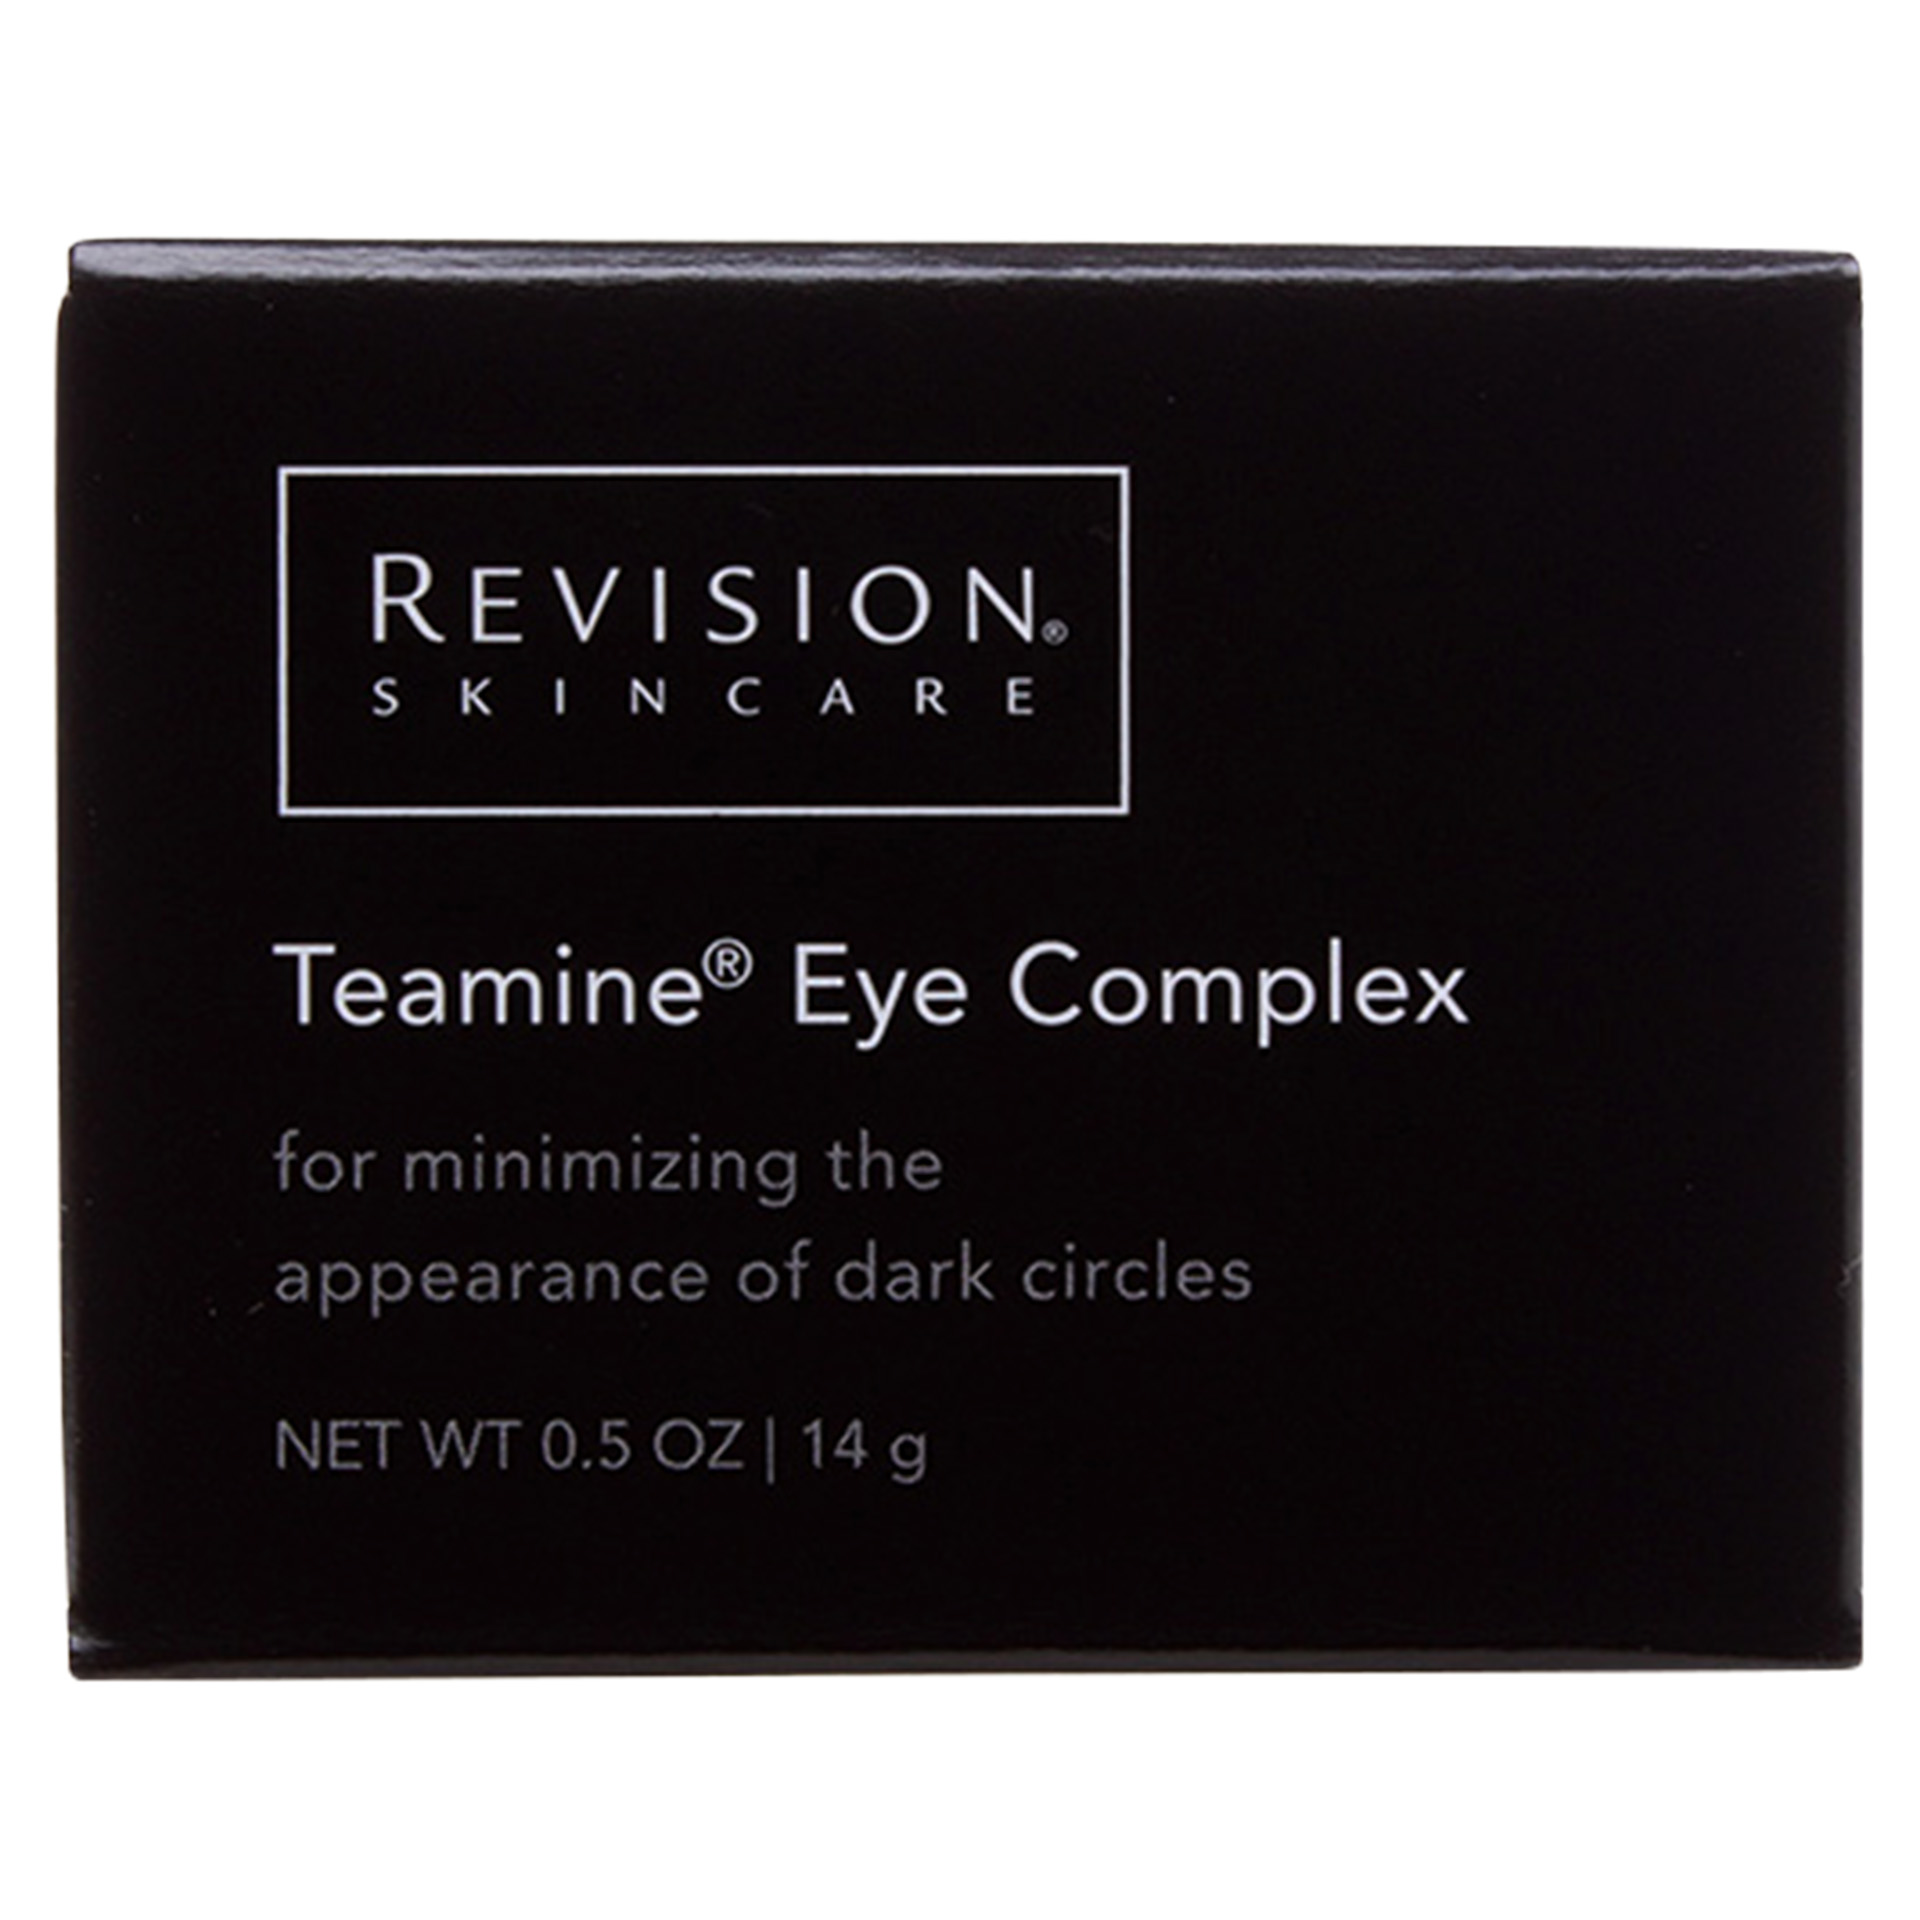 Revision Skincare Teamine Eye Complex 0.5 oz - New in Box